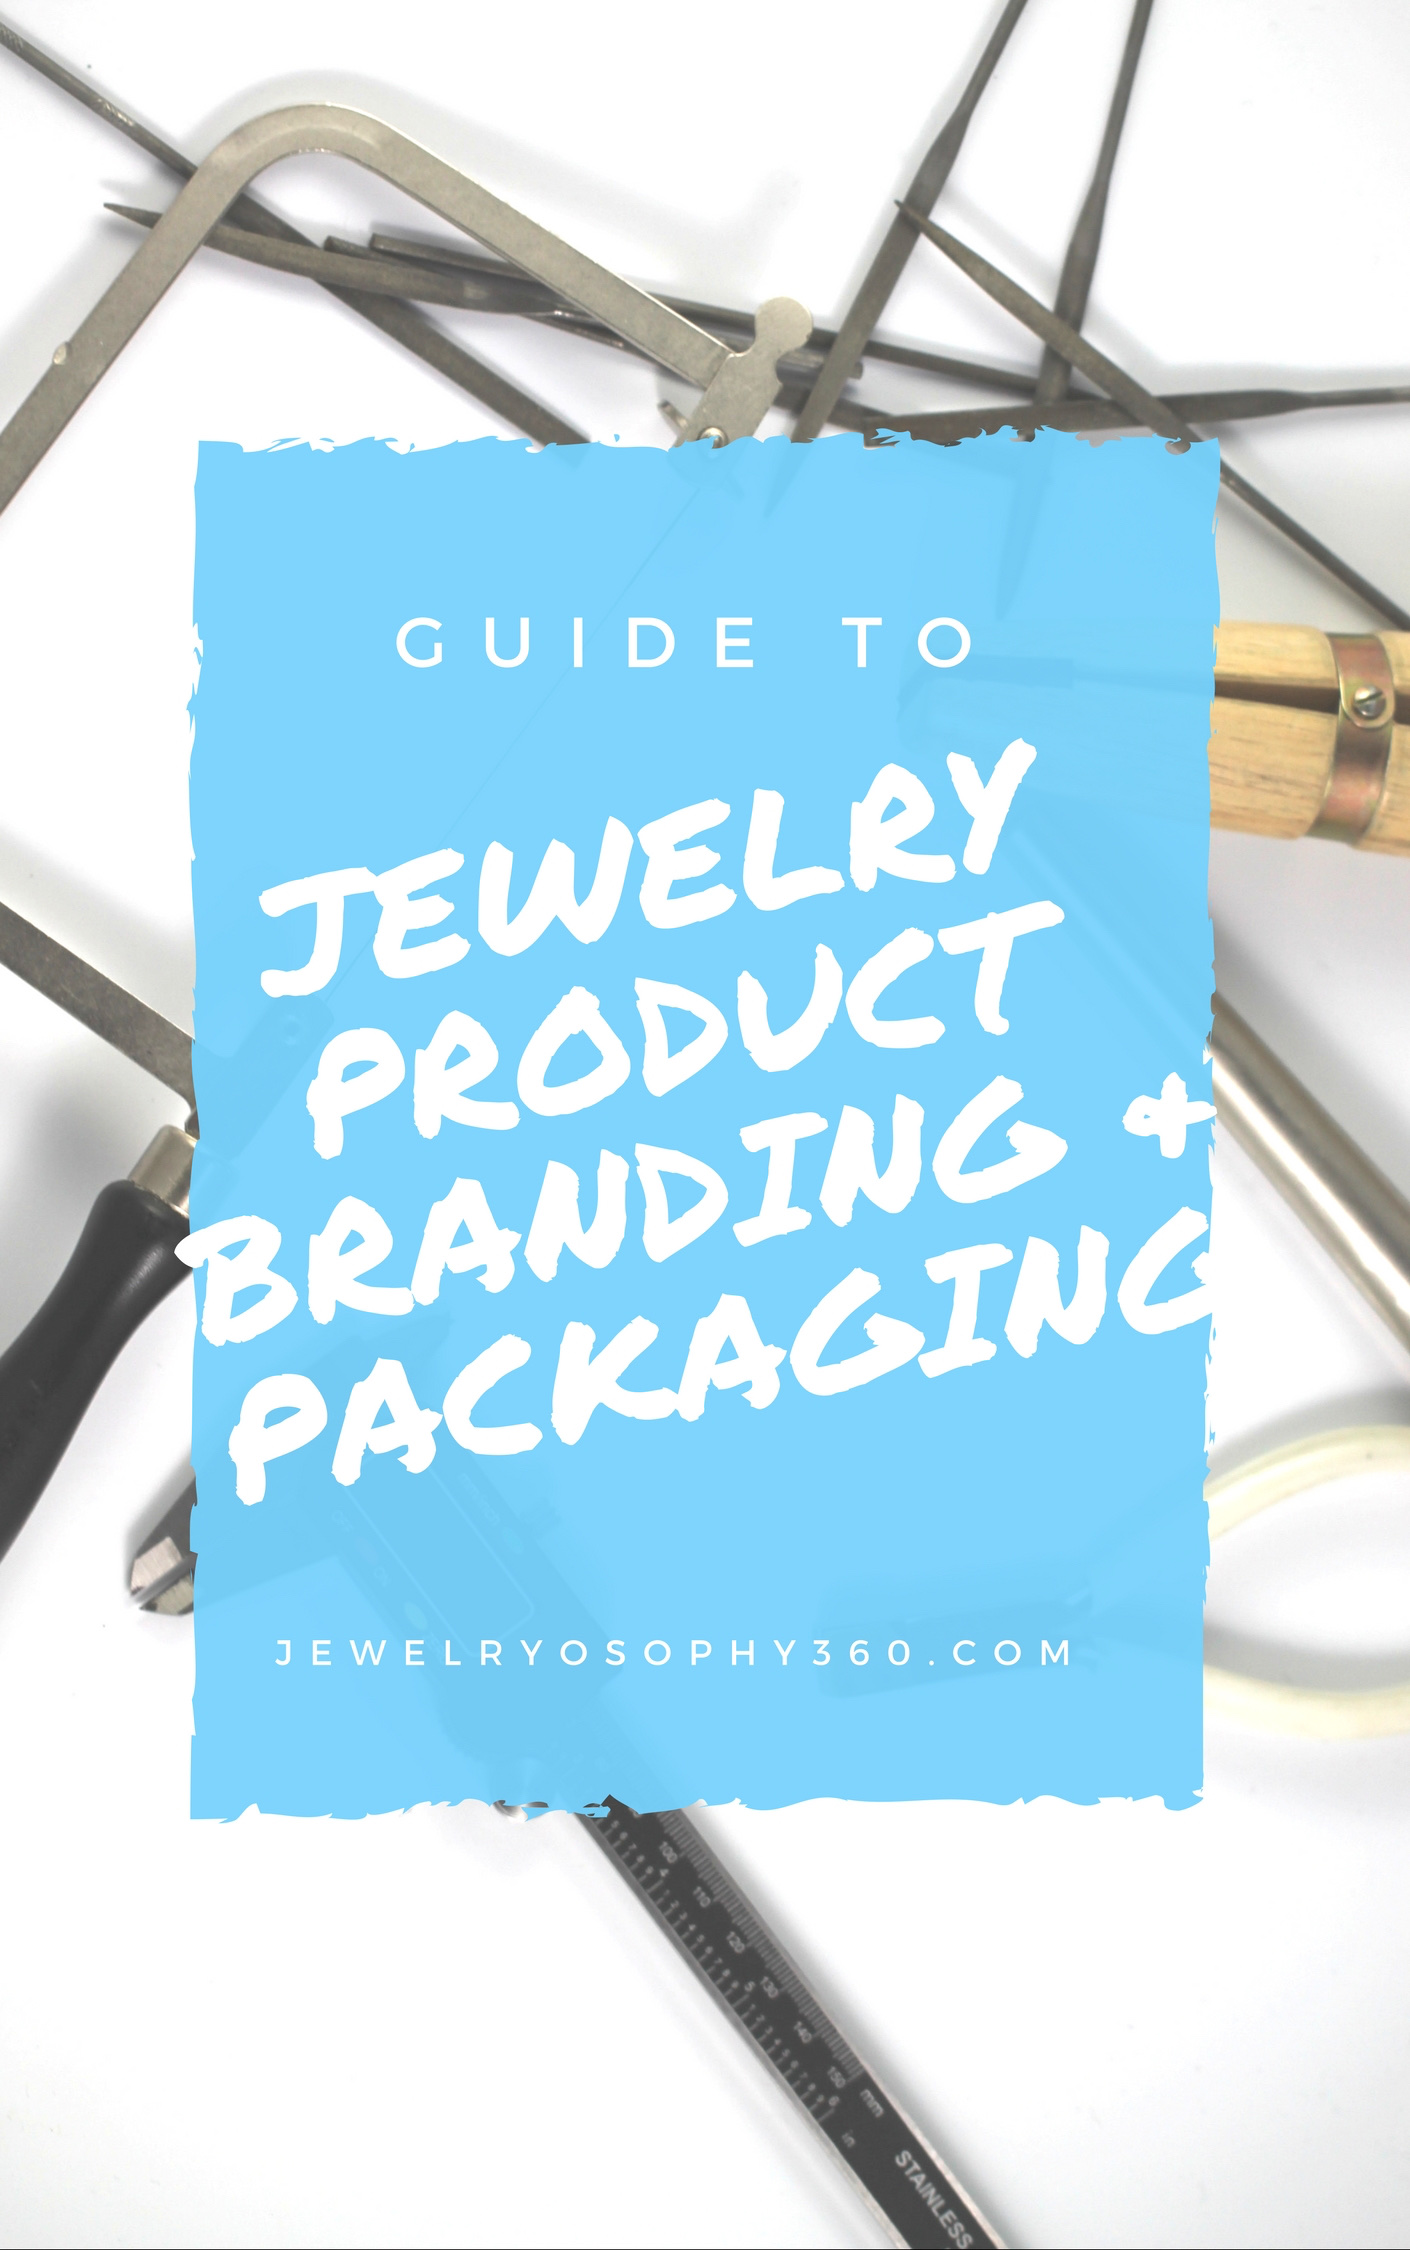 jewelryproductbrandingpackaging.jpg